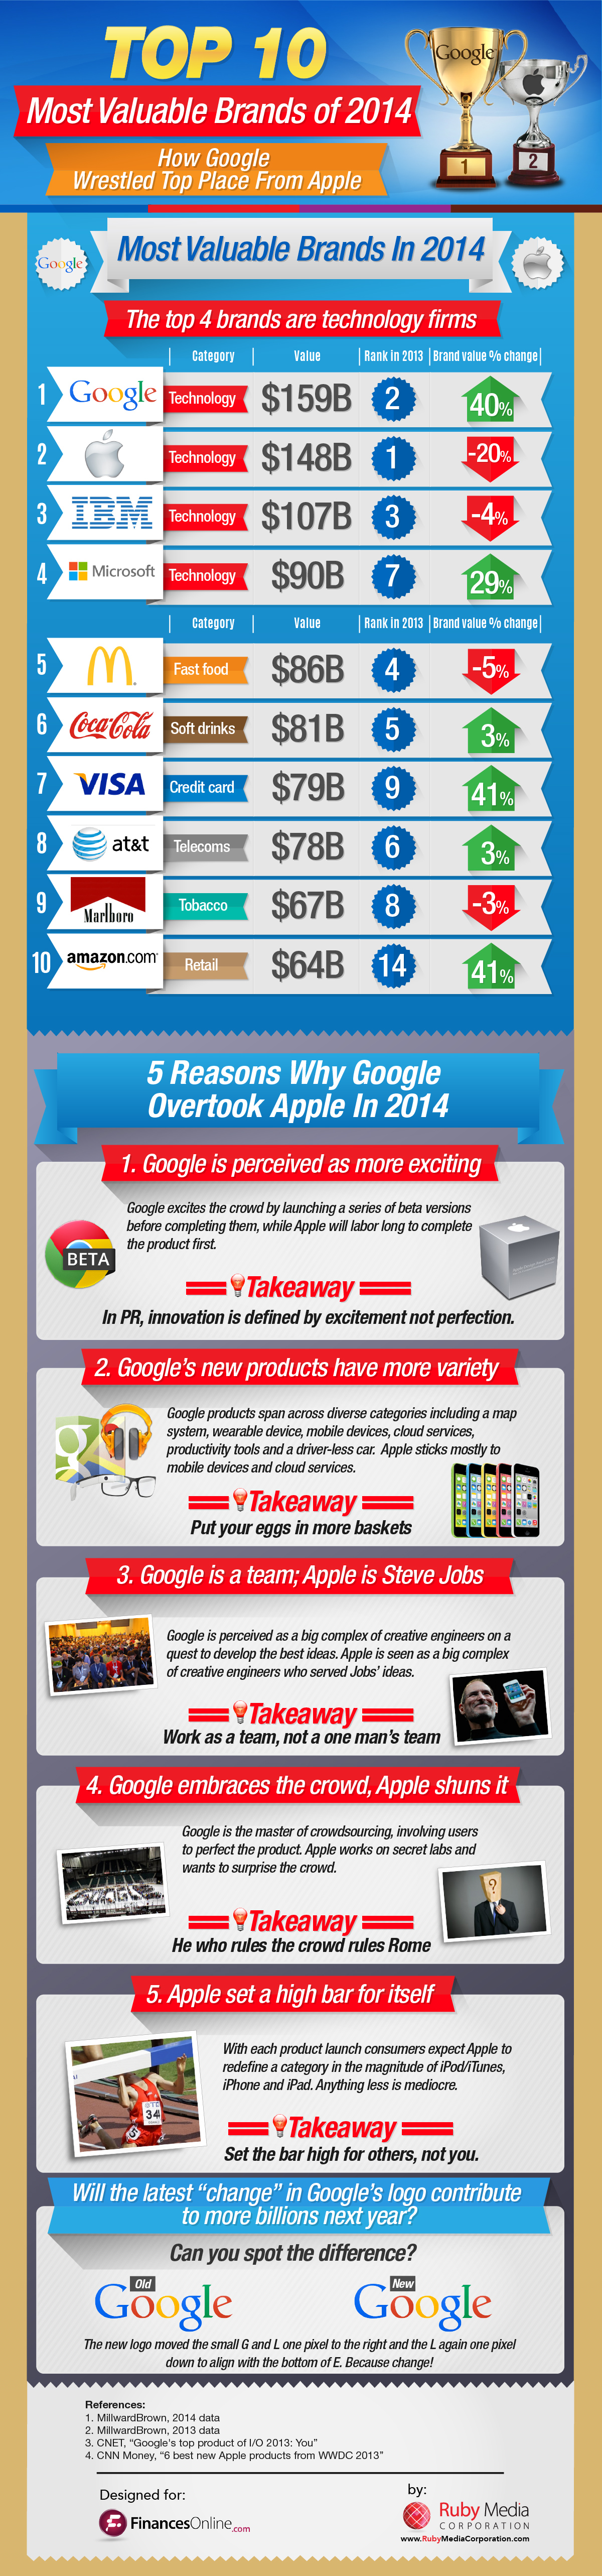 Comparison of the Most Valuable Brands of 2014: How Google Overtook Apple and Other Tech Companies at the No. 1 Spot